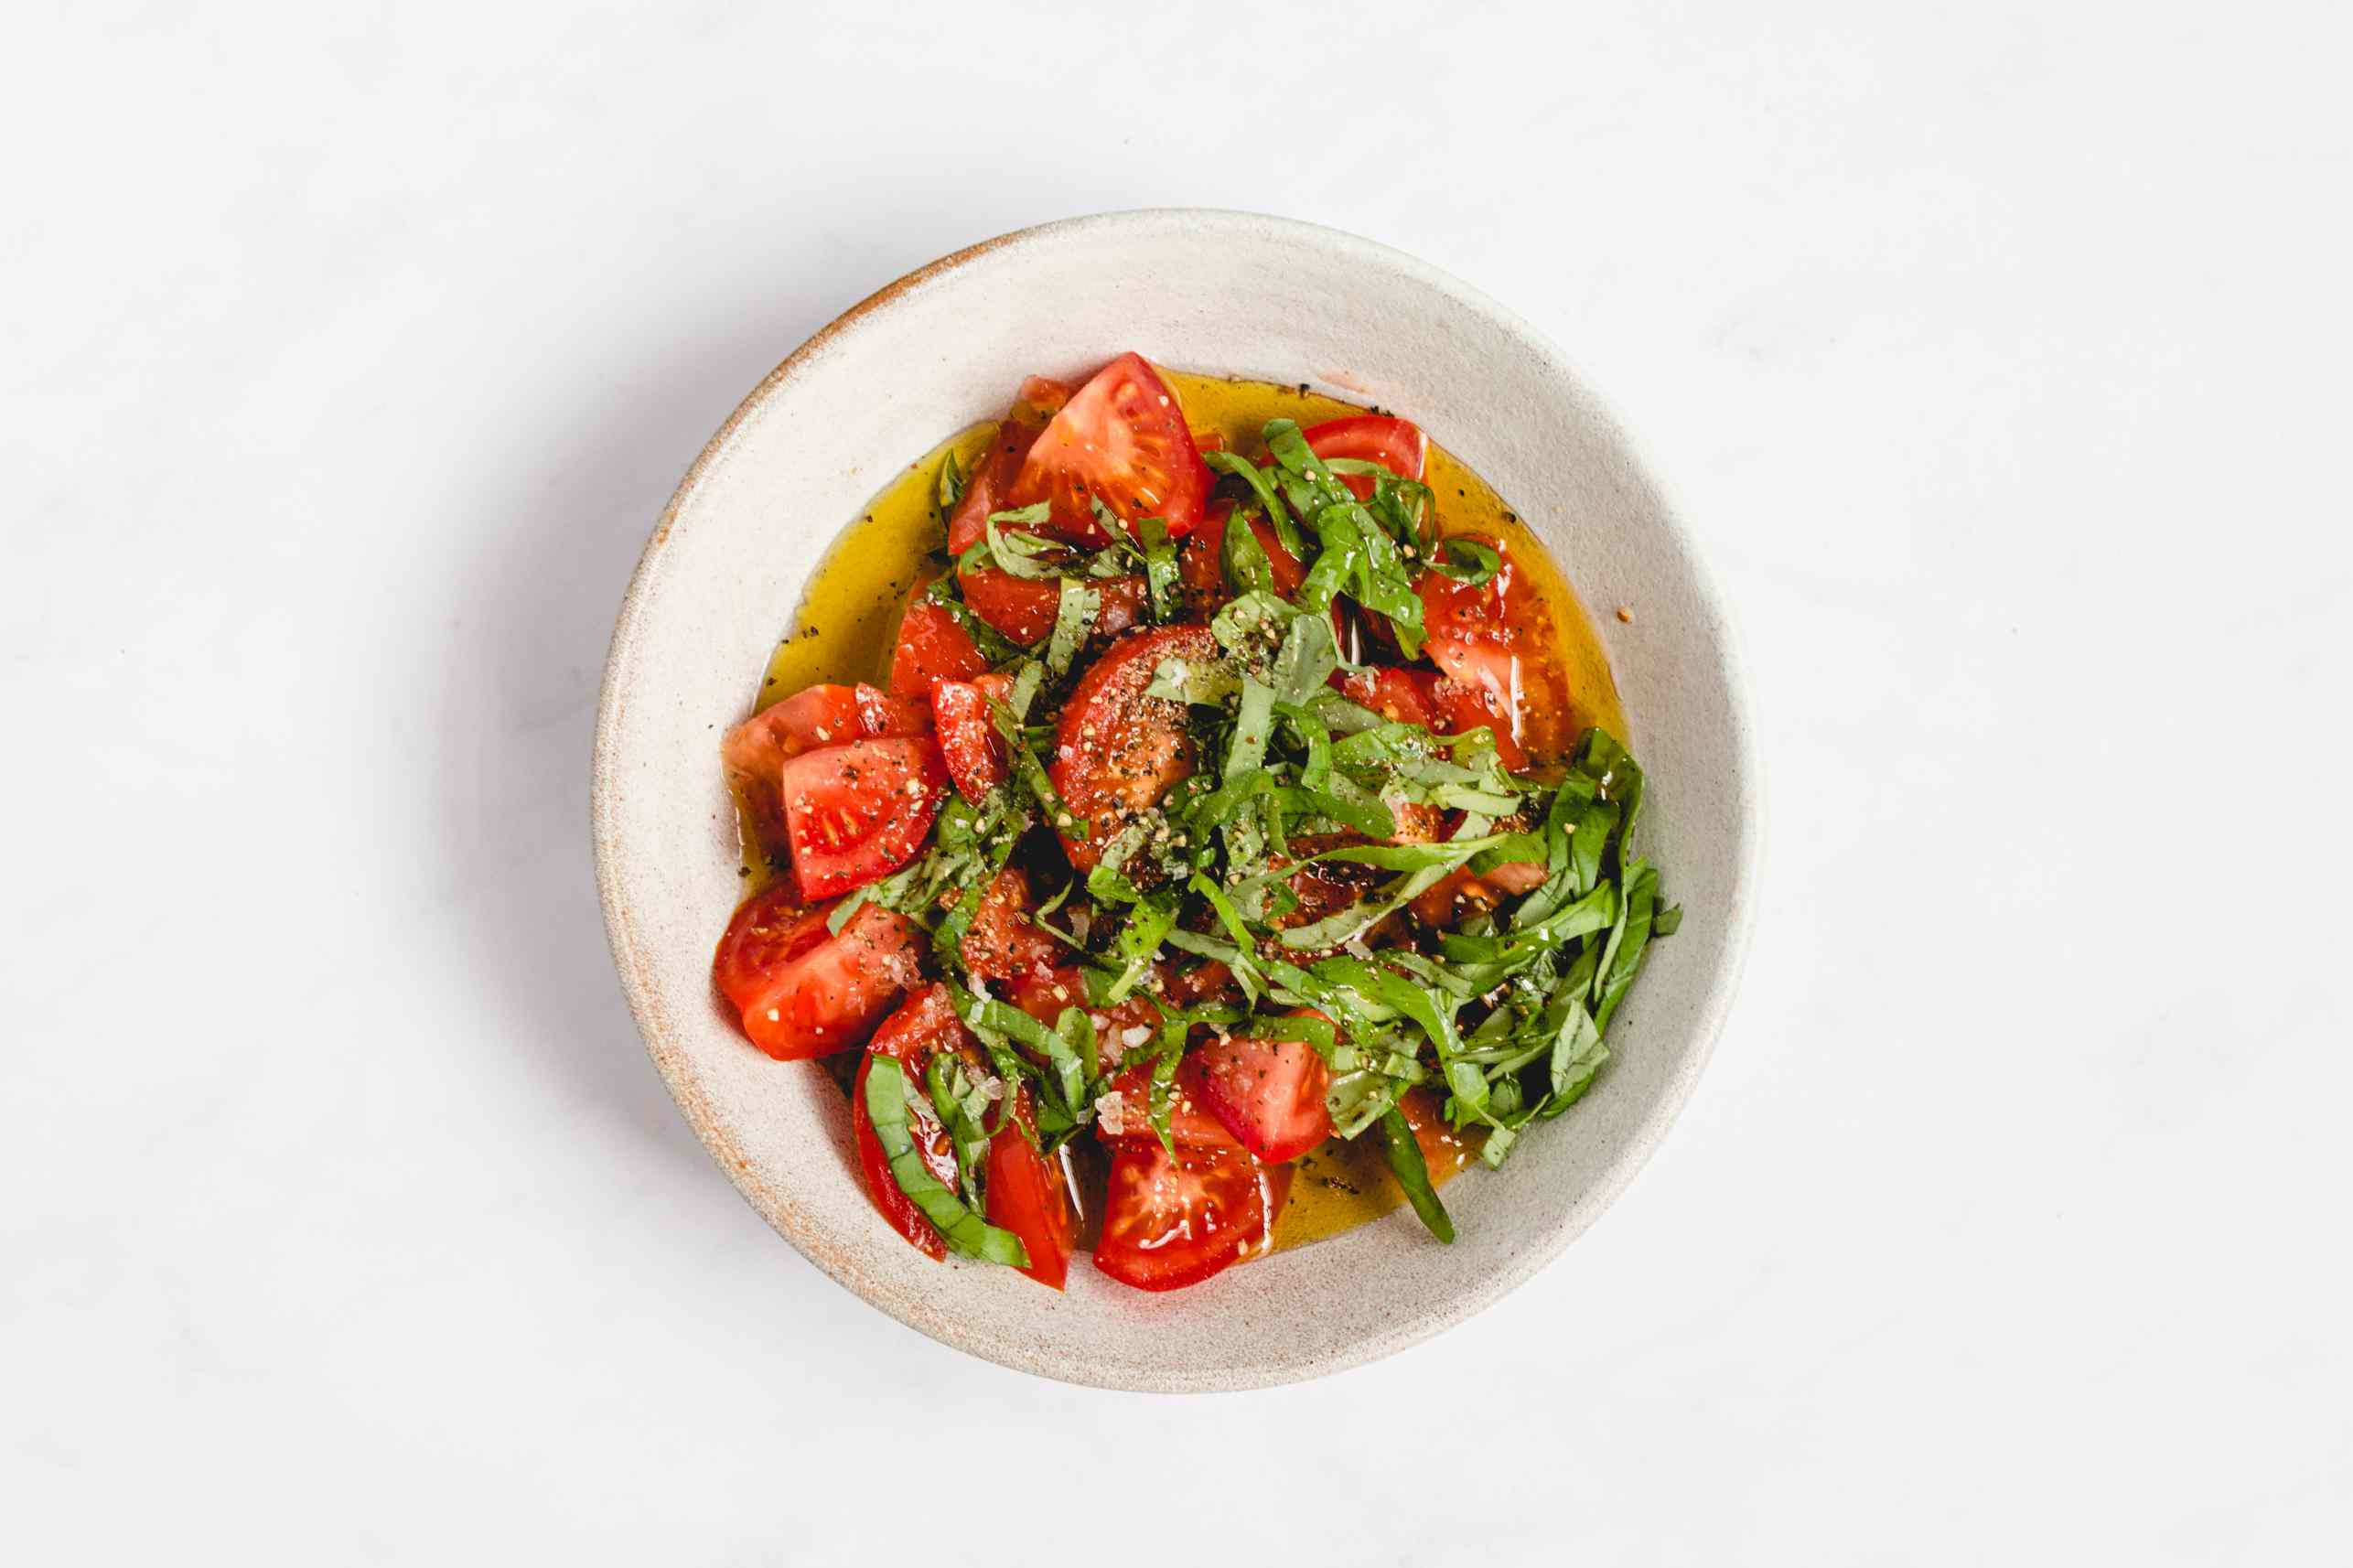 tomatoes, olive oil, lemon juice, and fresh basil in a large bowl